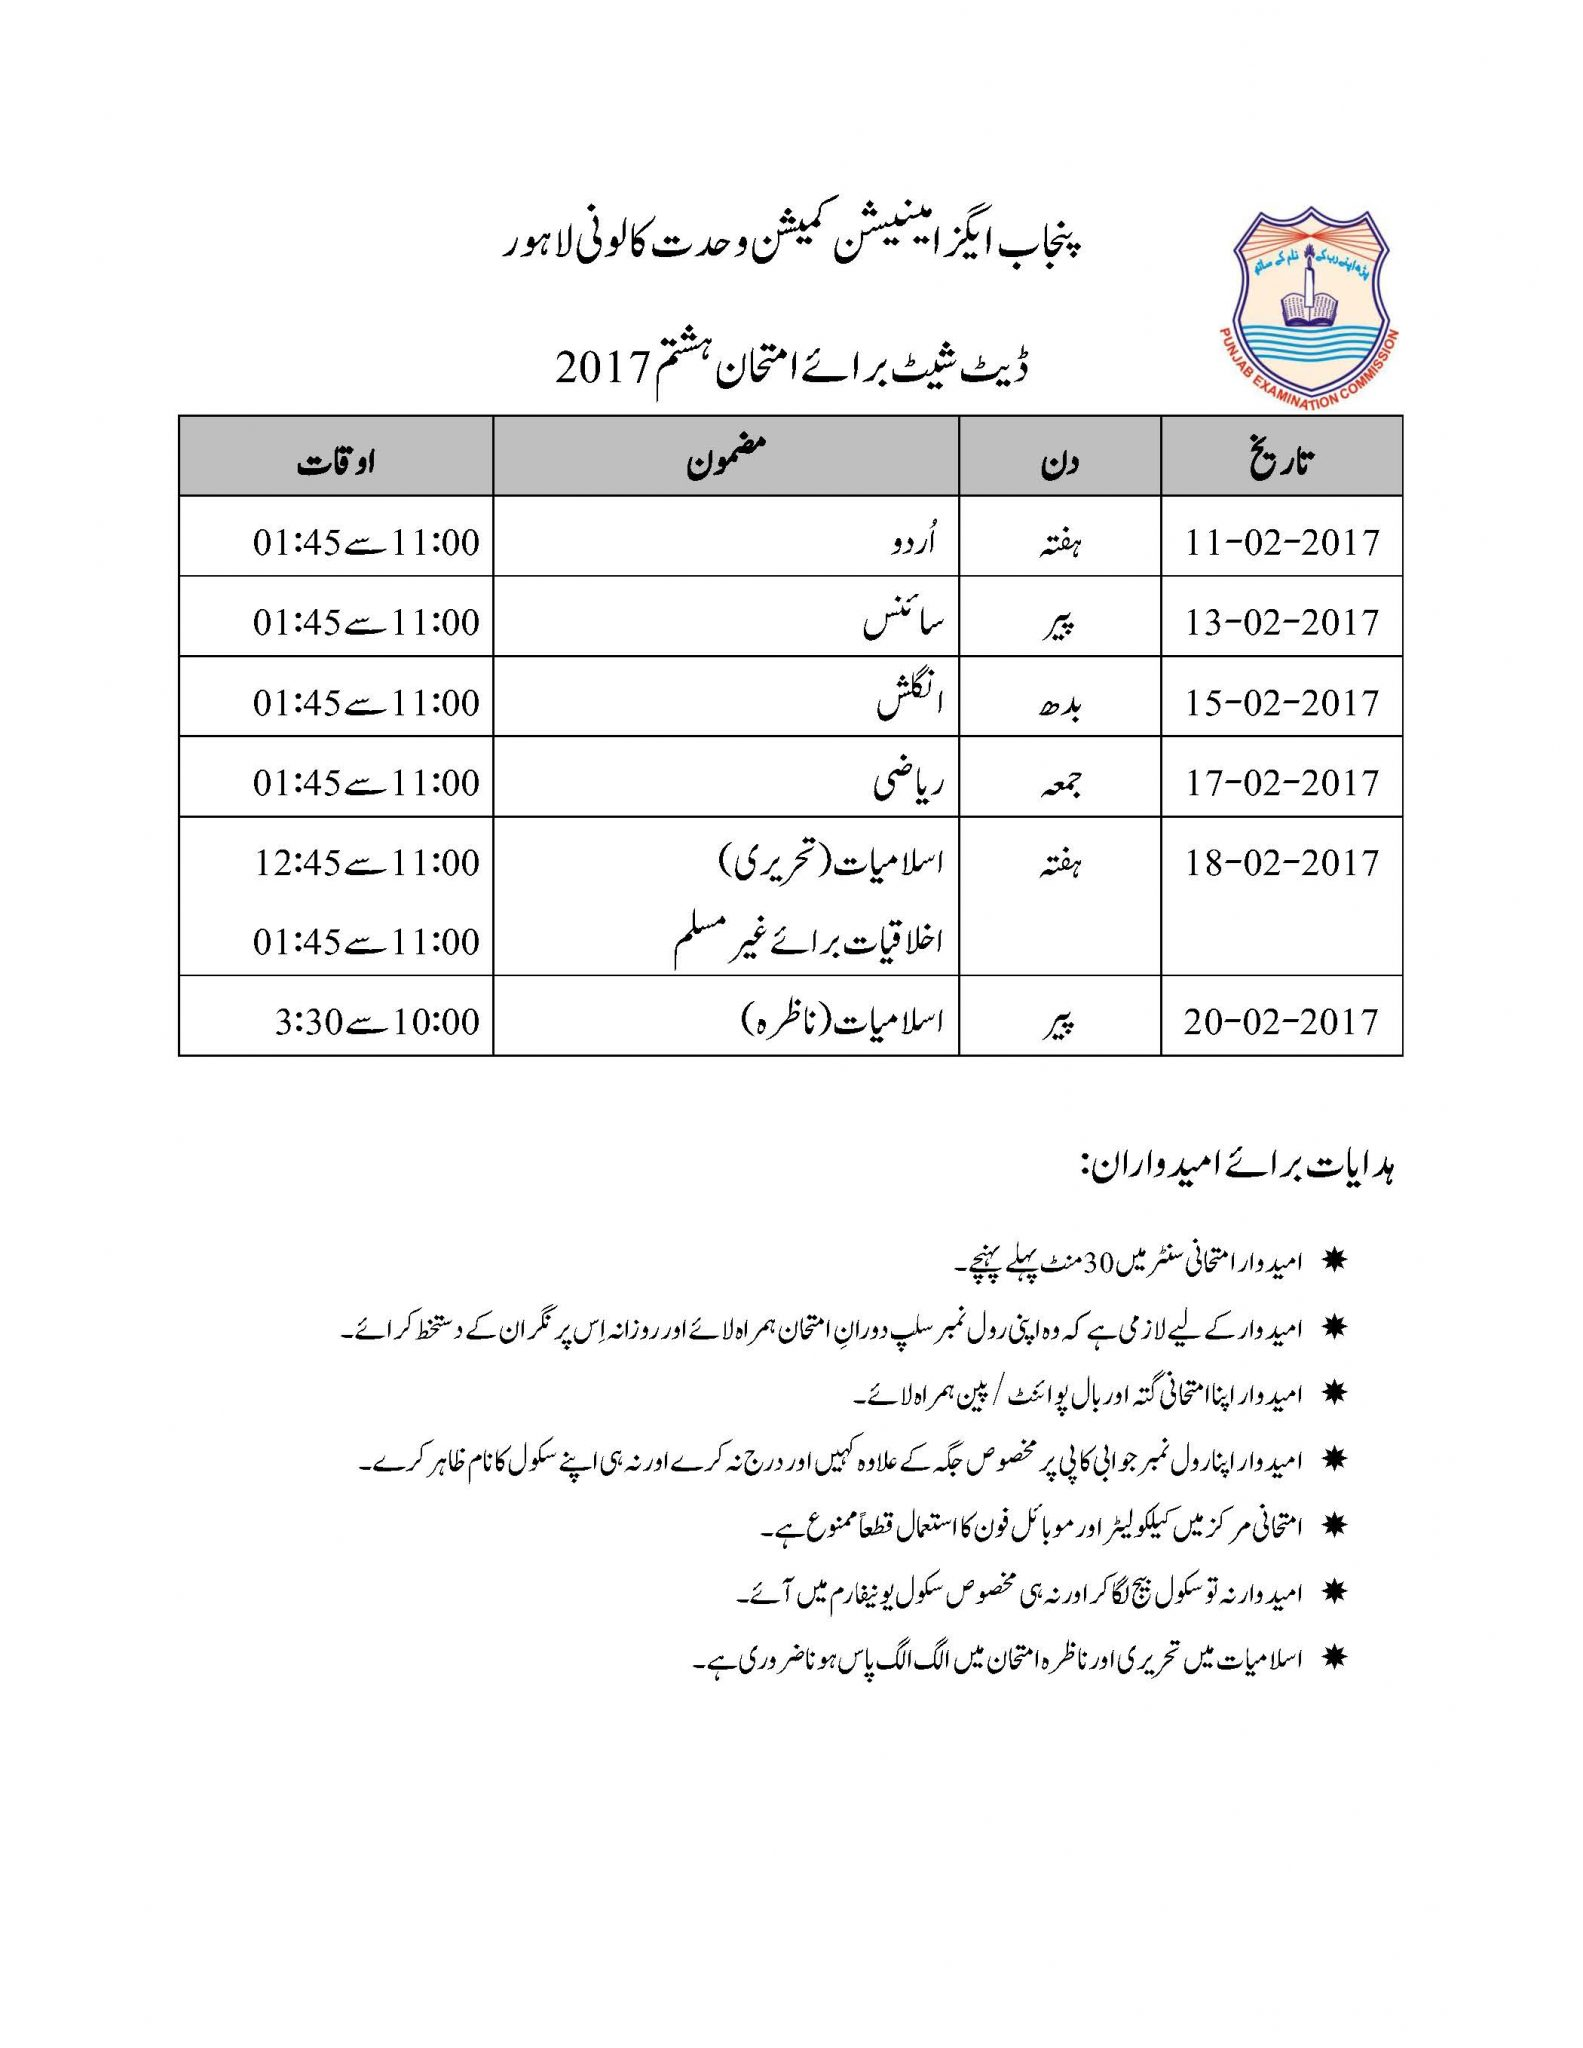 5th Class PEC Date Sheet 2017 Page 2